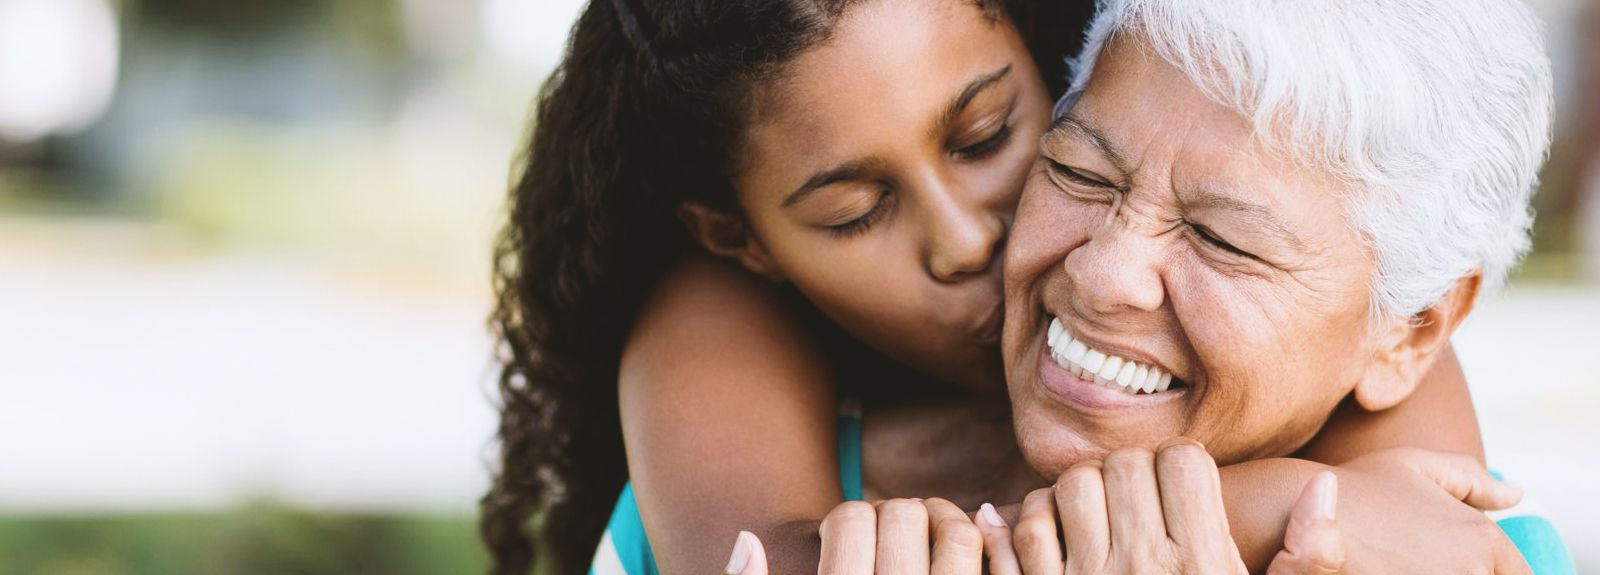 Young girl hugging an older woman